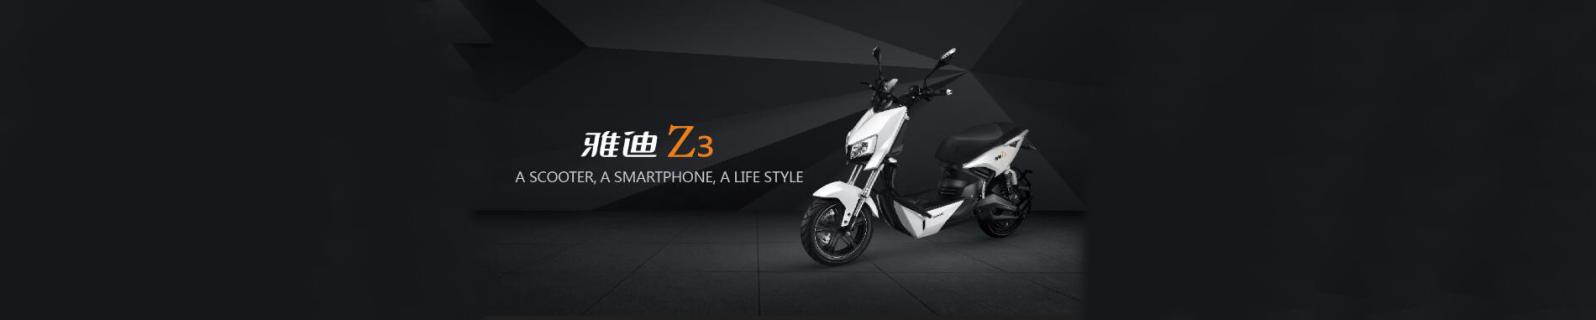 Yadea Launches Z3 Electric Motorcycle With Enhanced